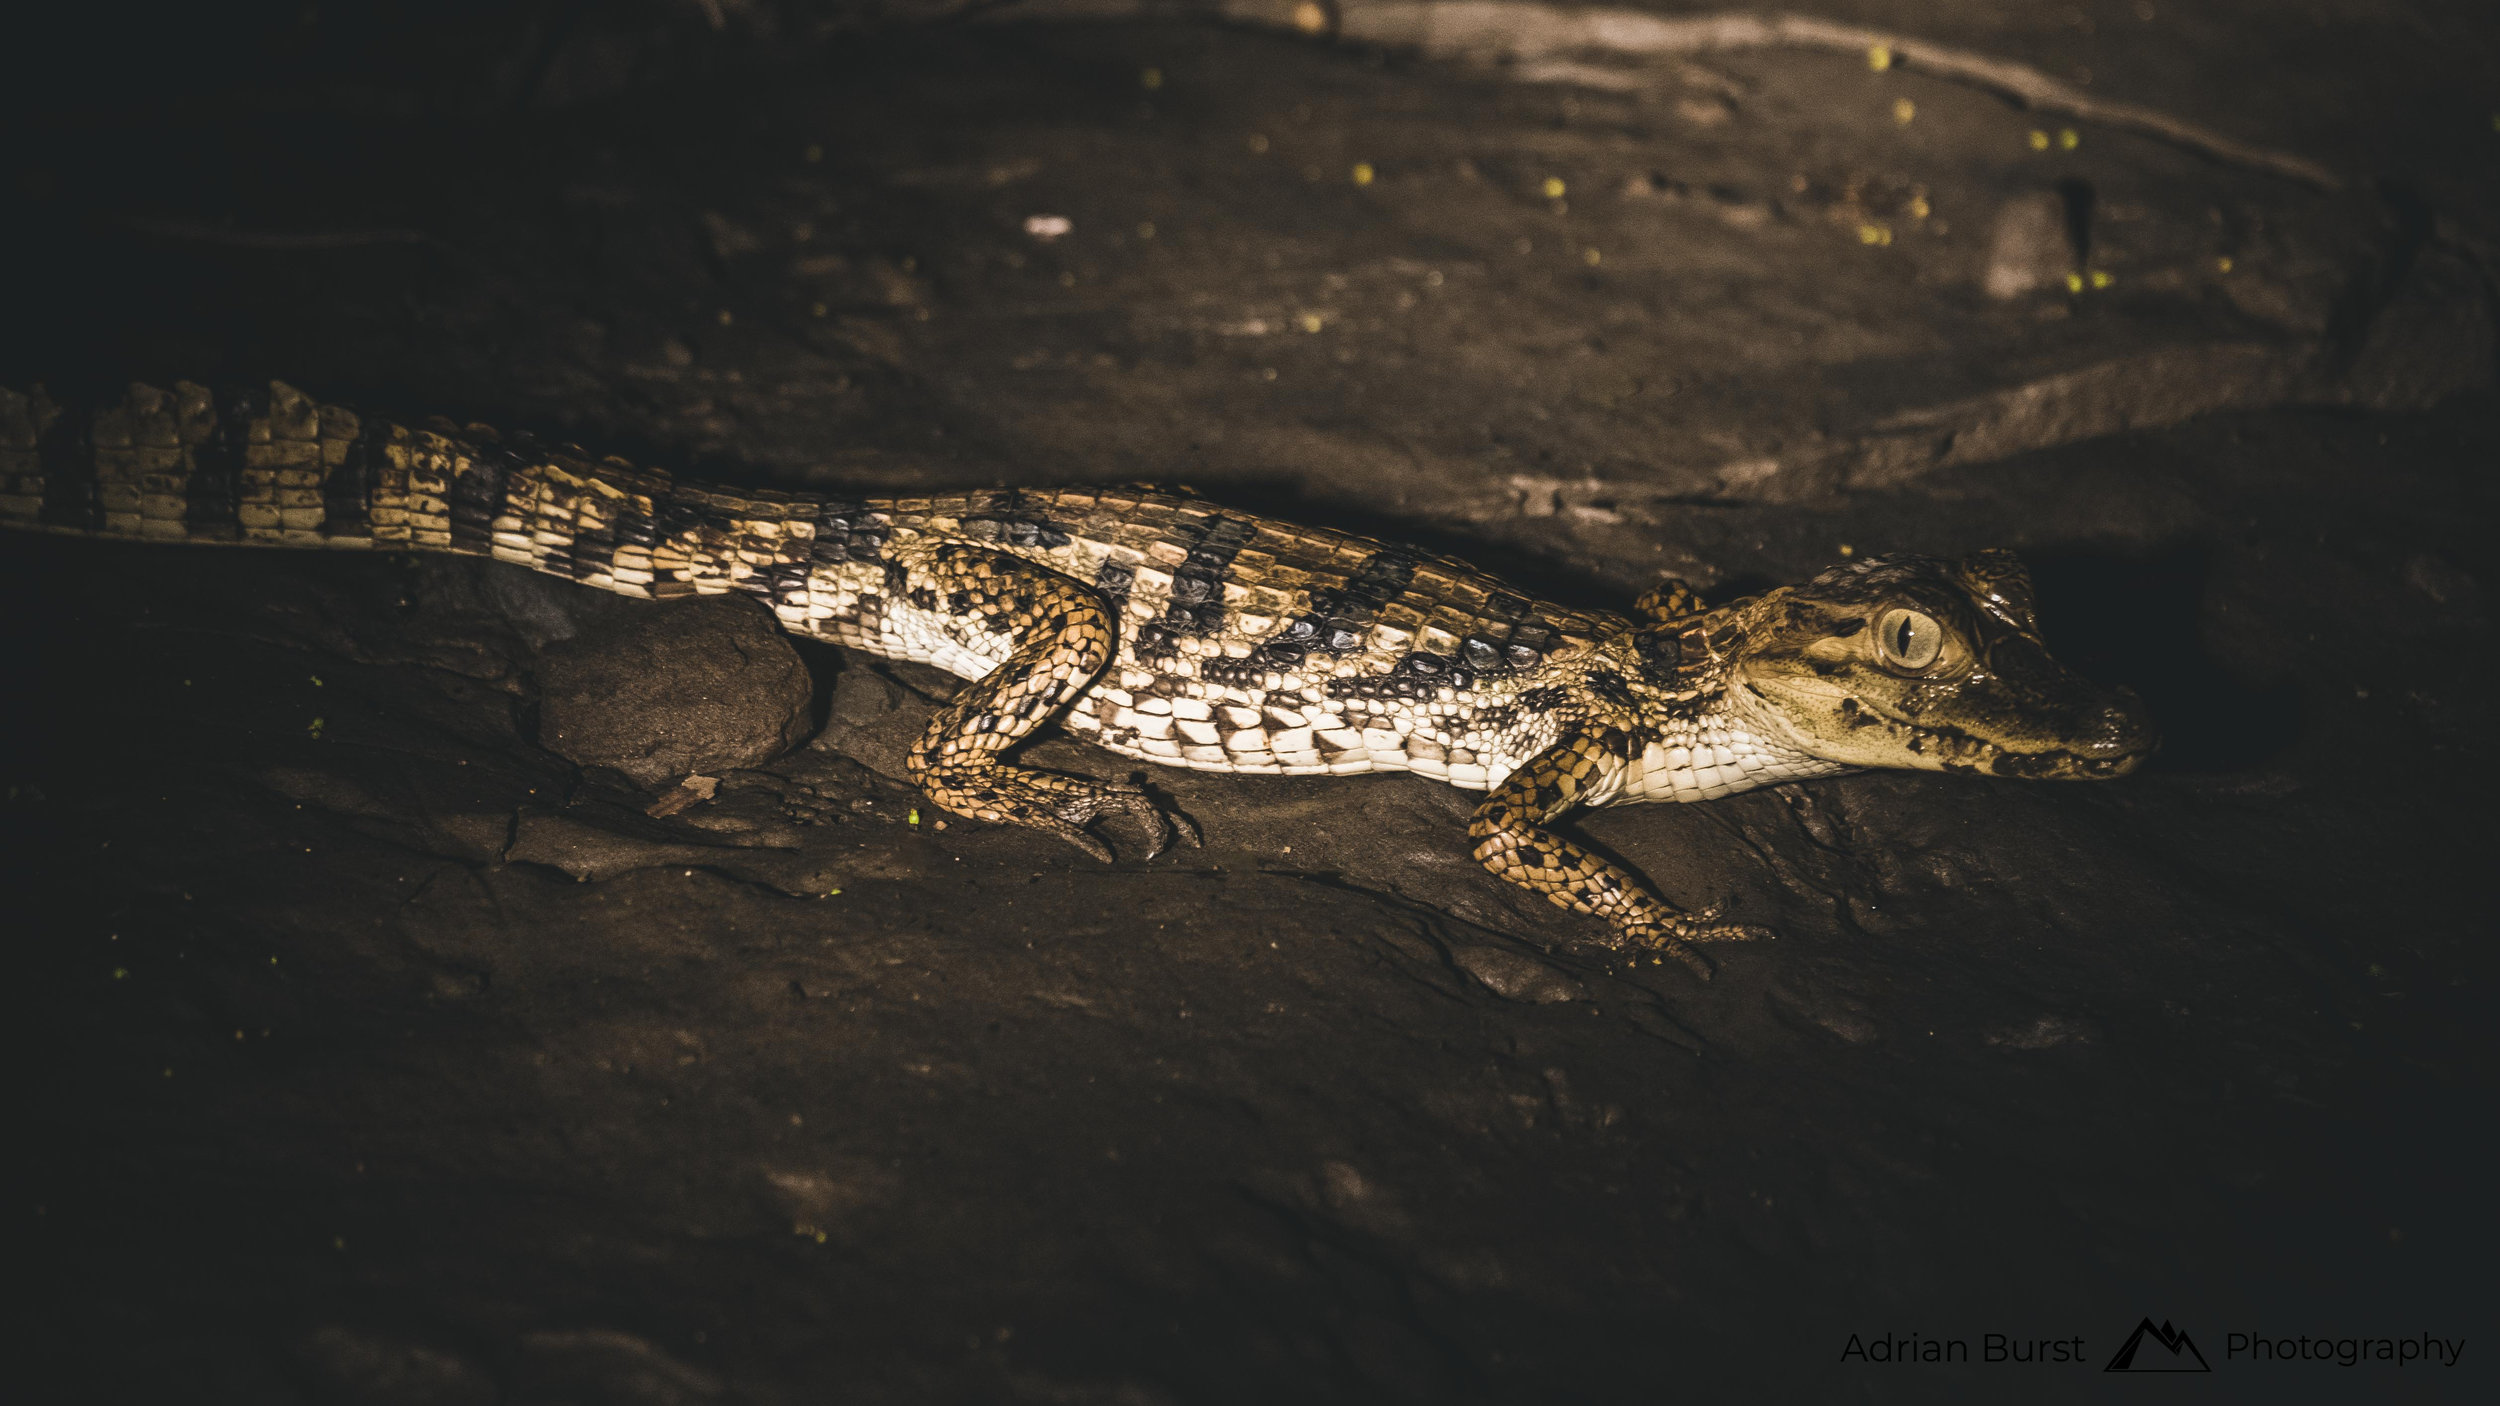 145 | Black caiman, Tambopata national reserve